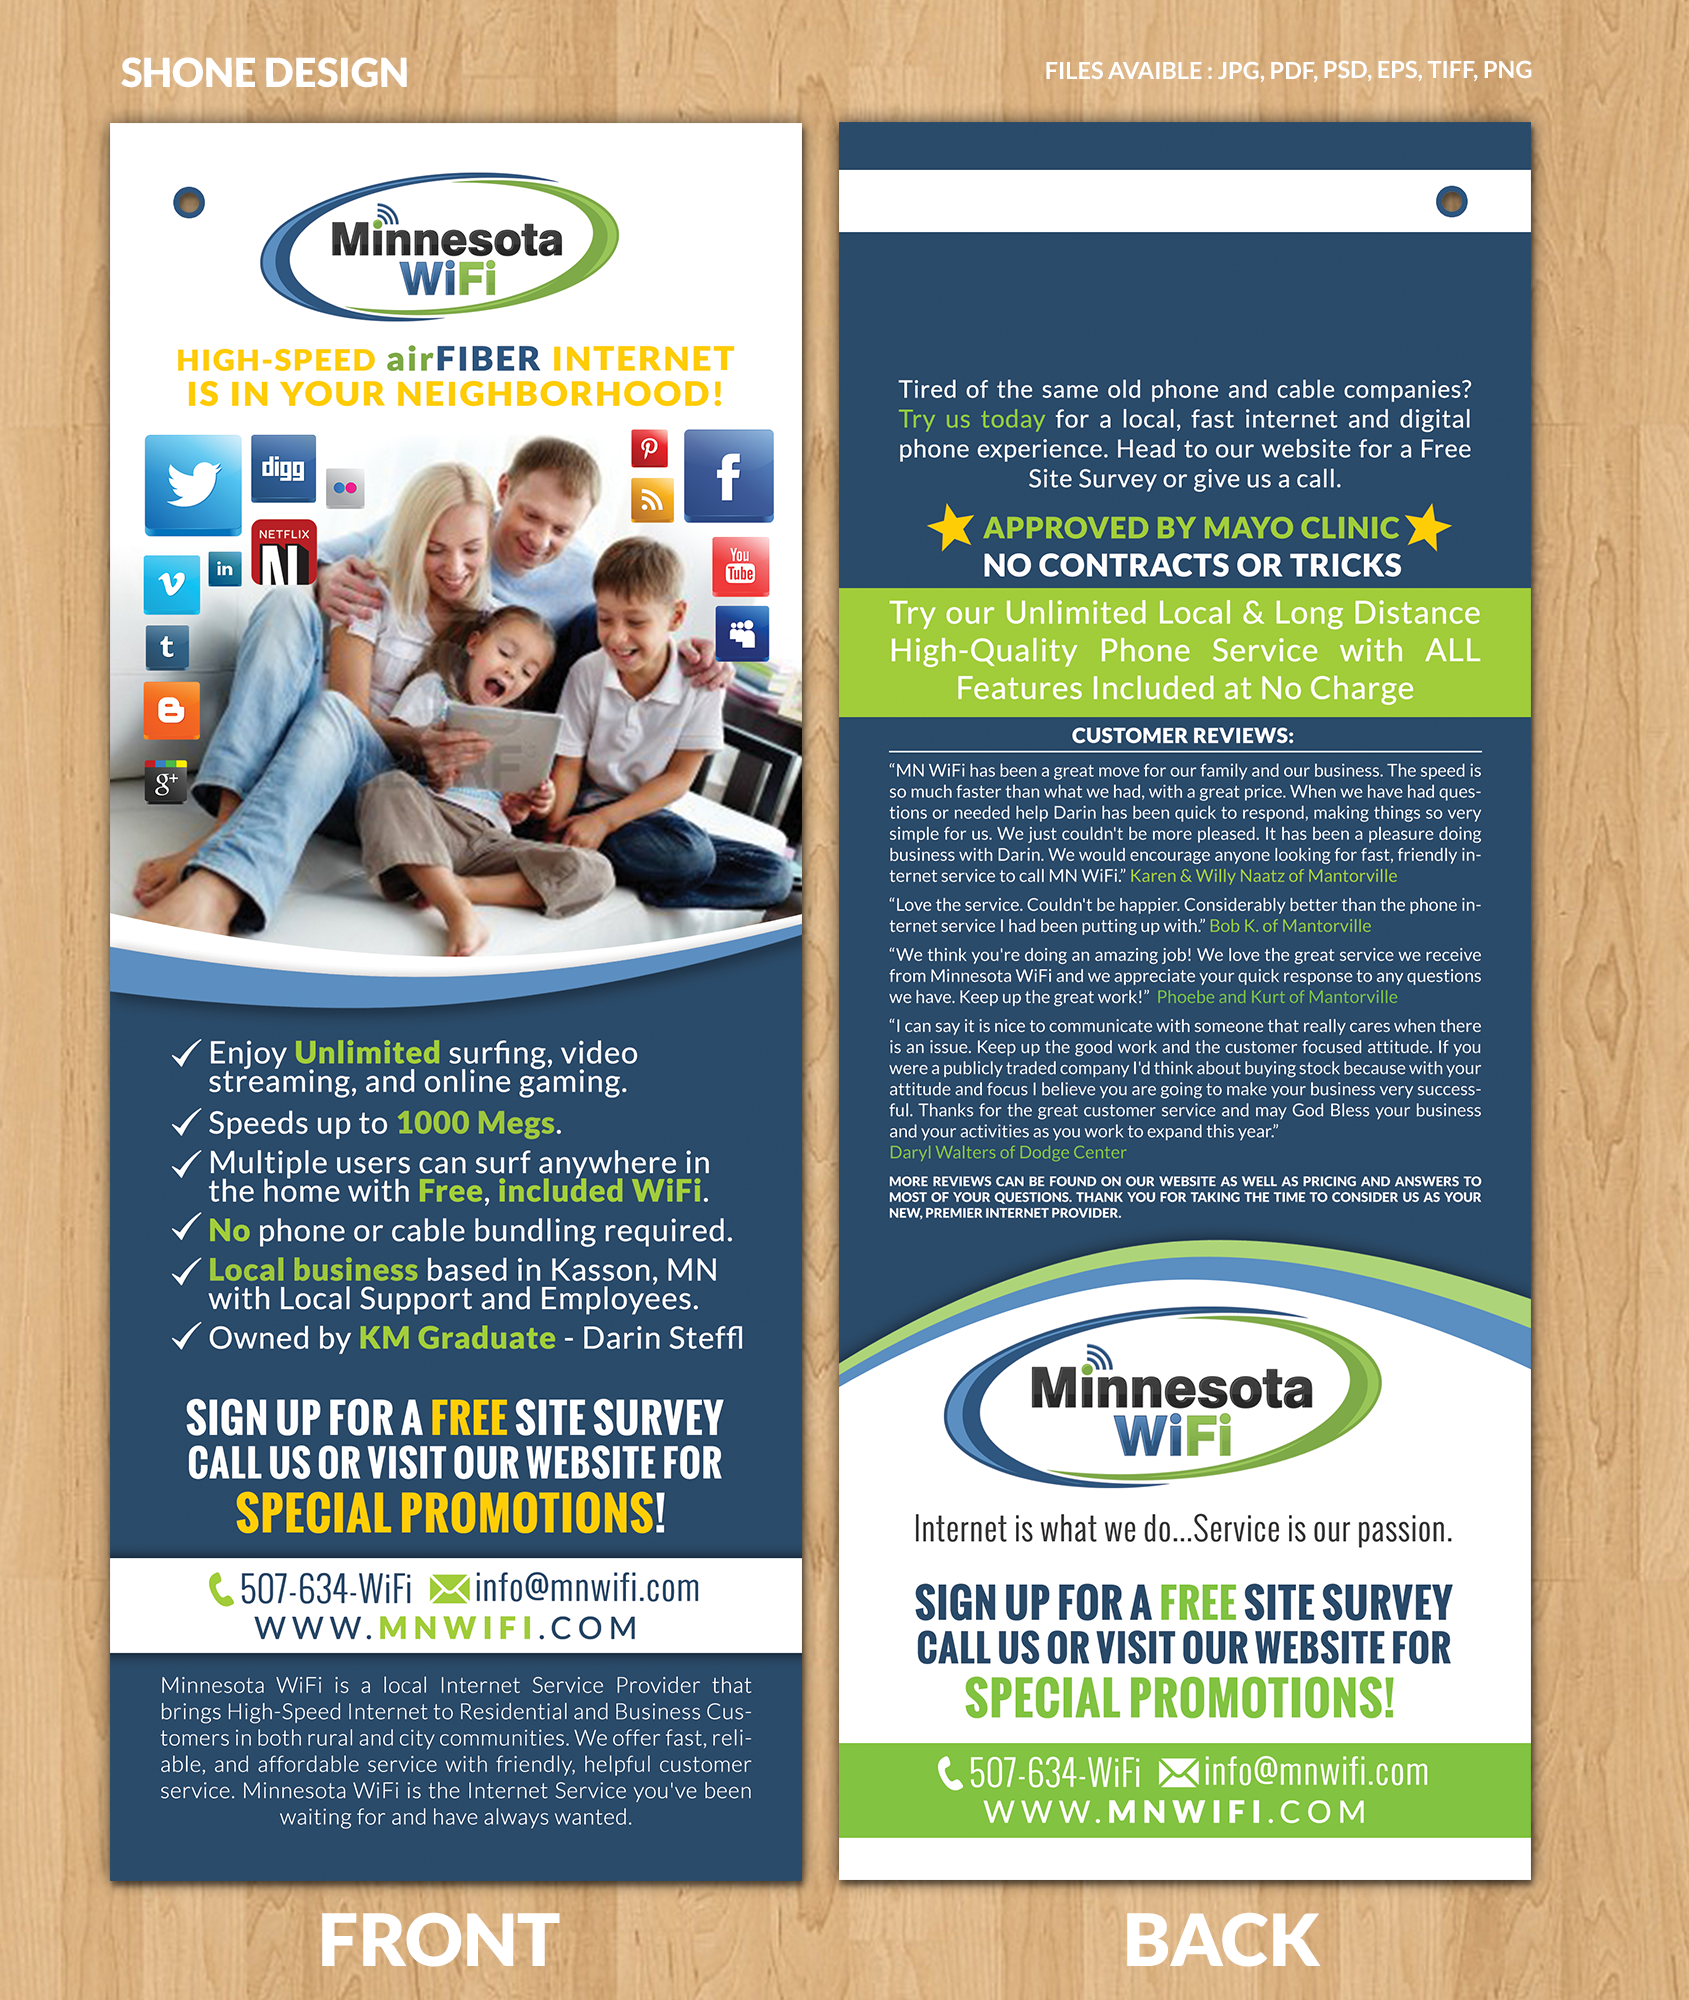 All info provided to create a FUN door flyer for internet provider